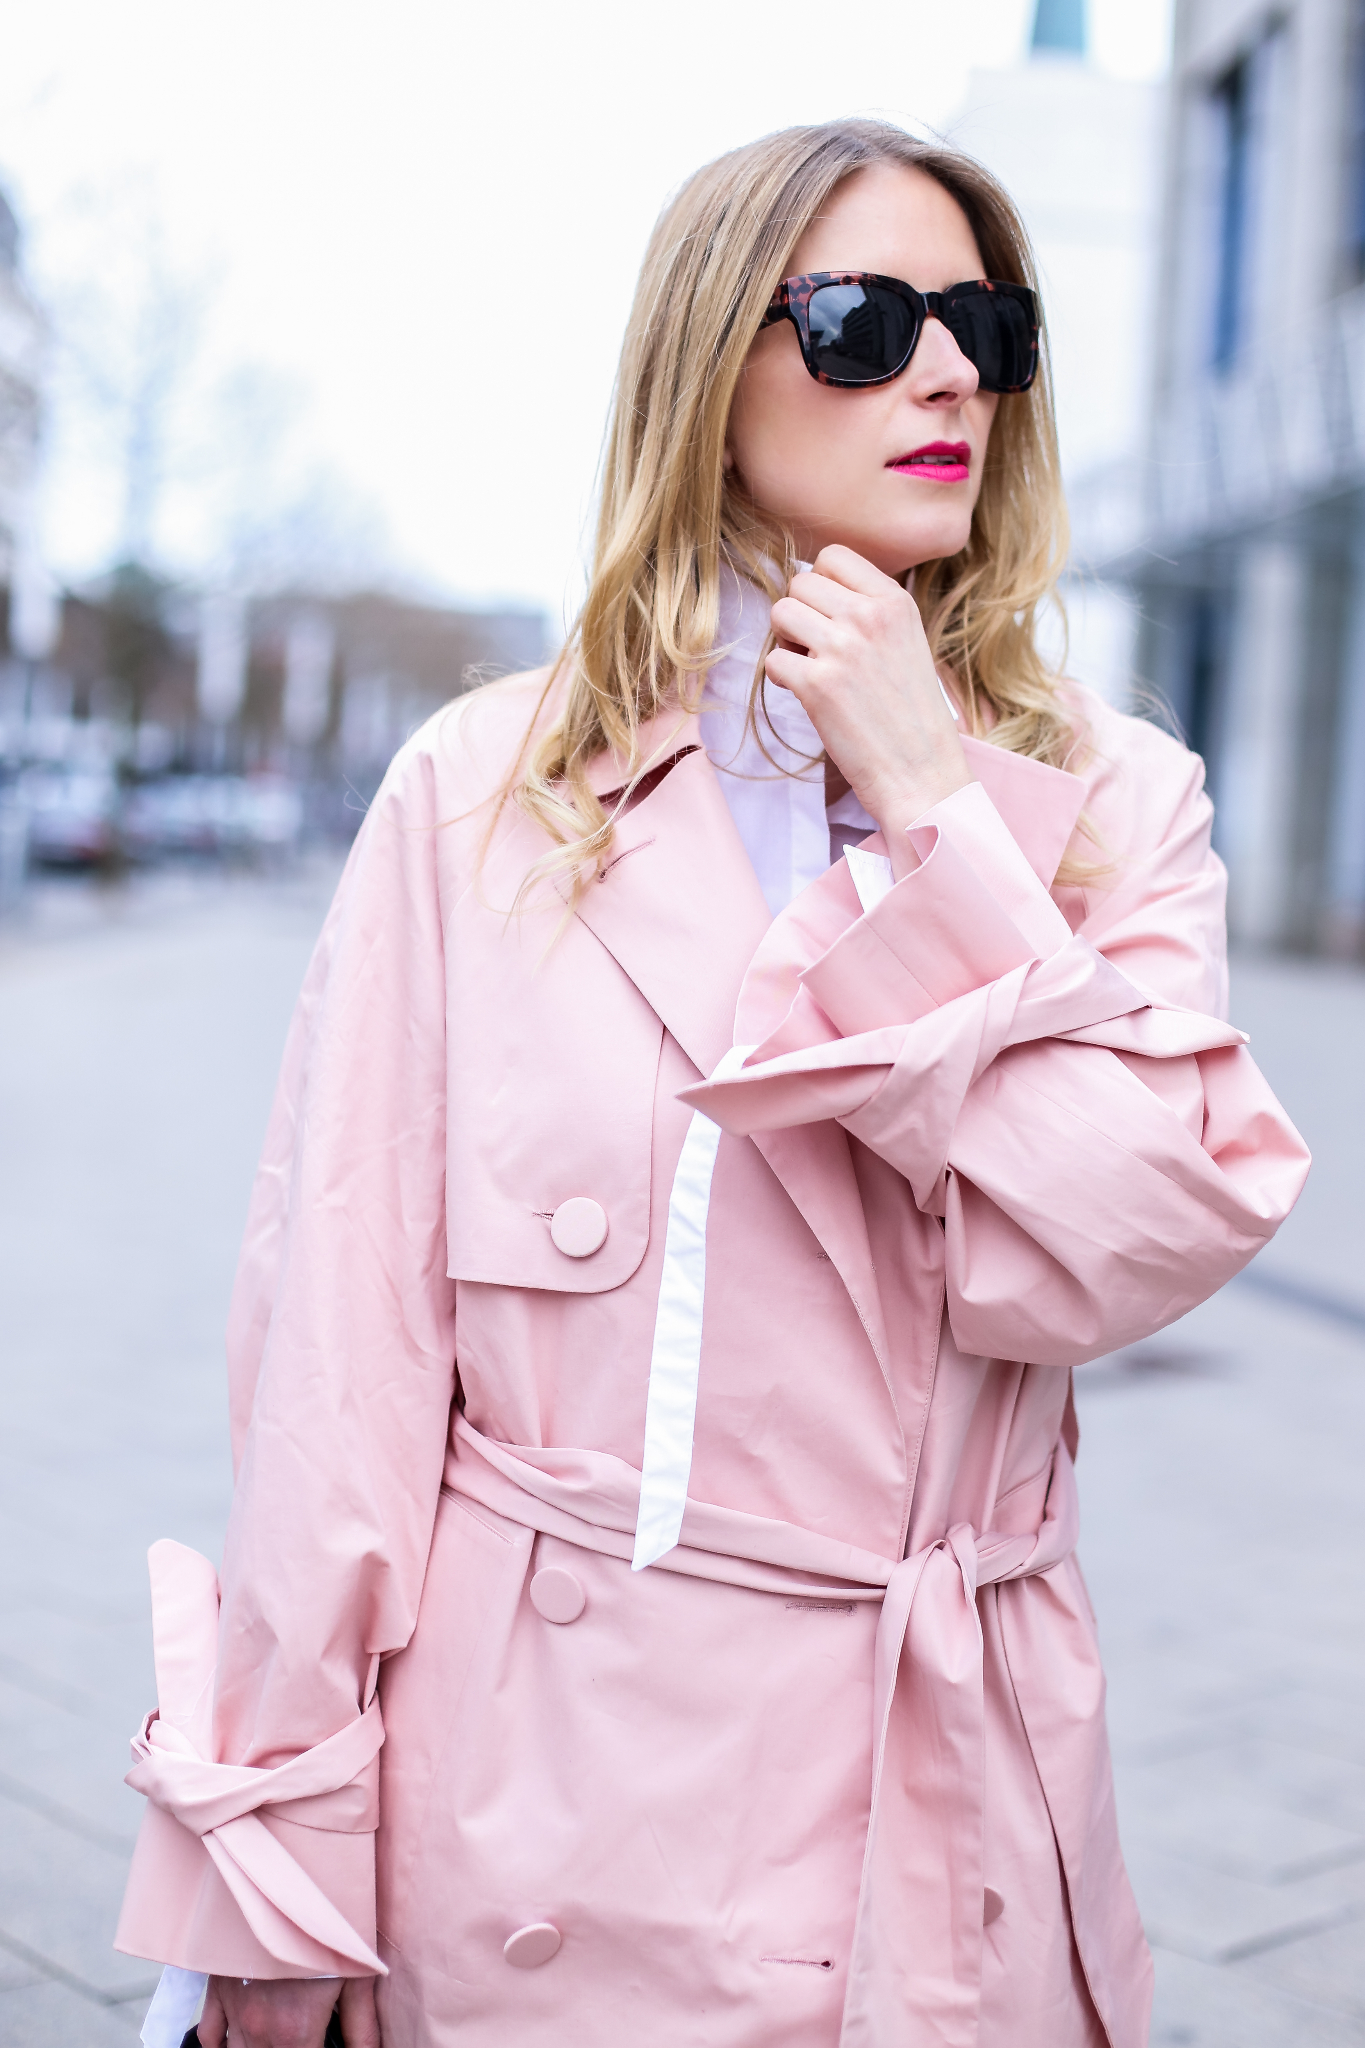 MOD-by-Monique-Fashion-Looks-Pink-and-bows-7